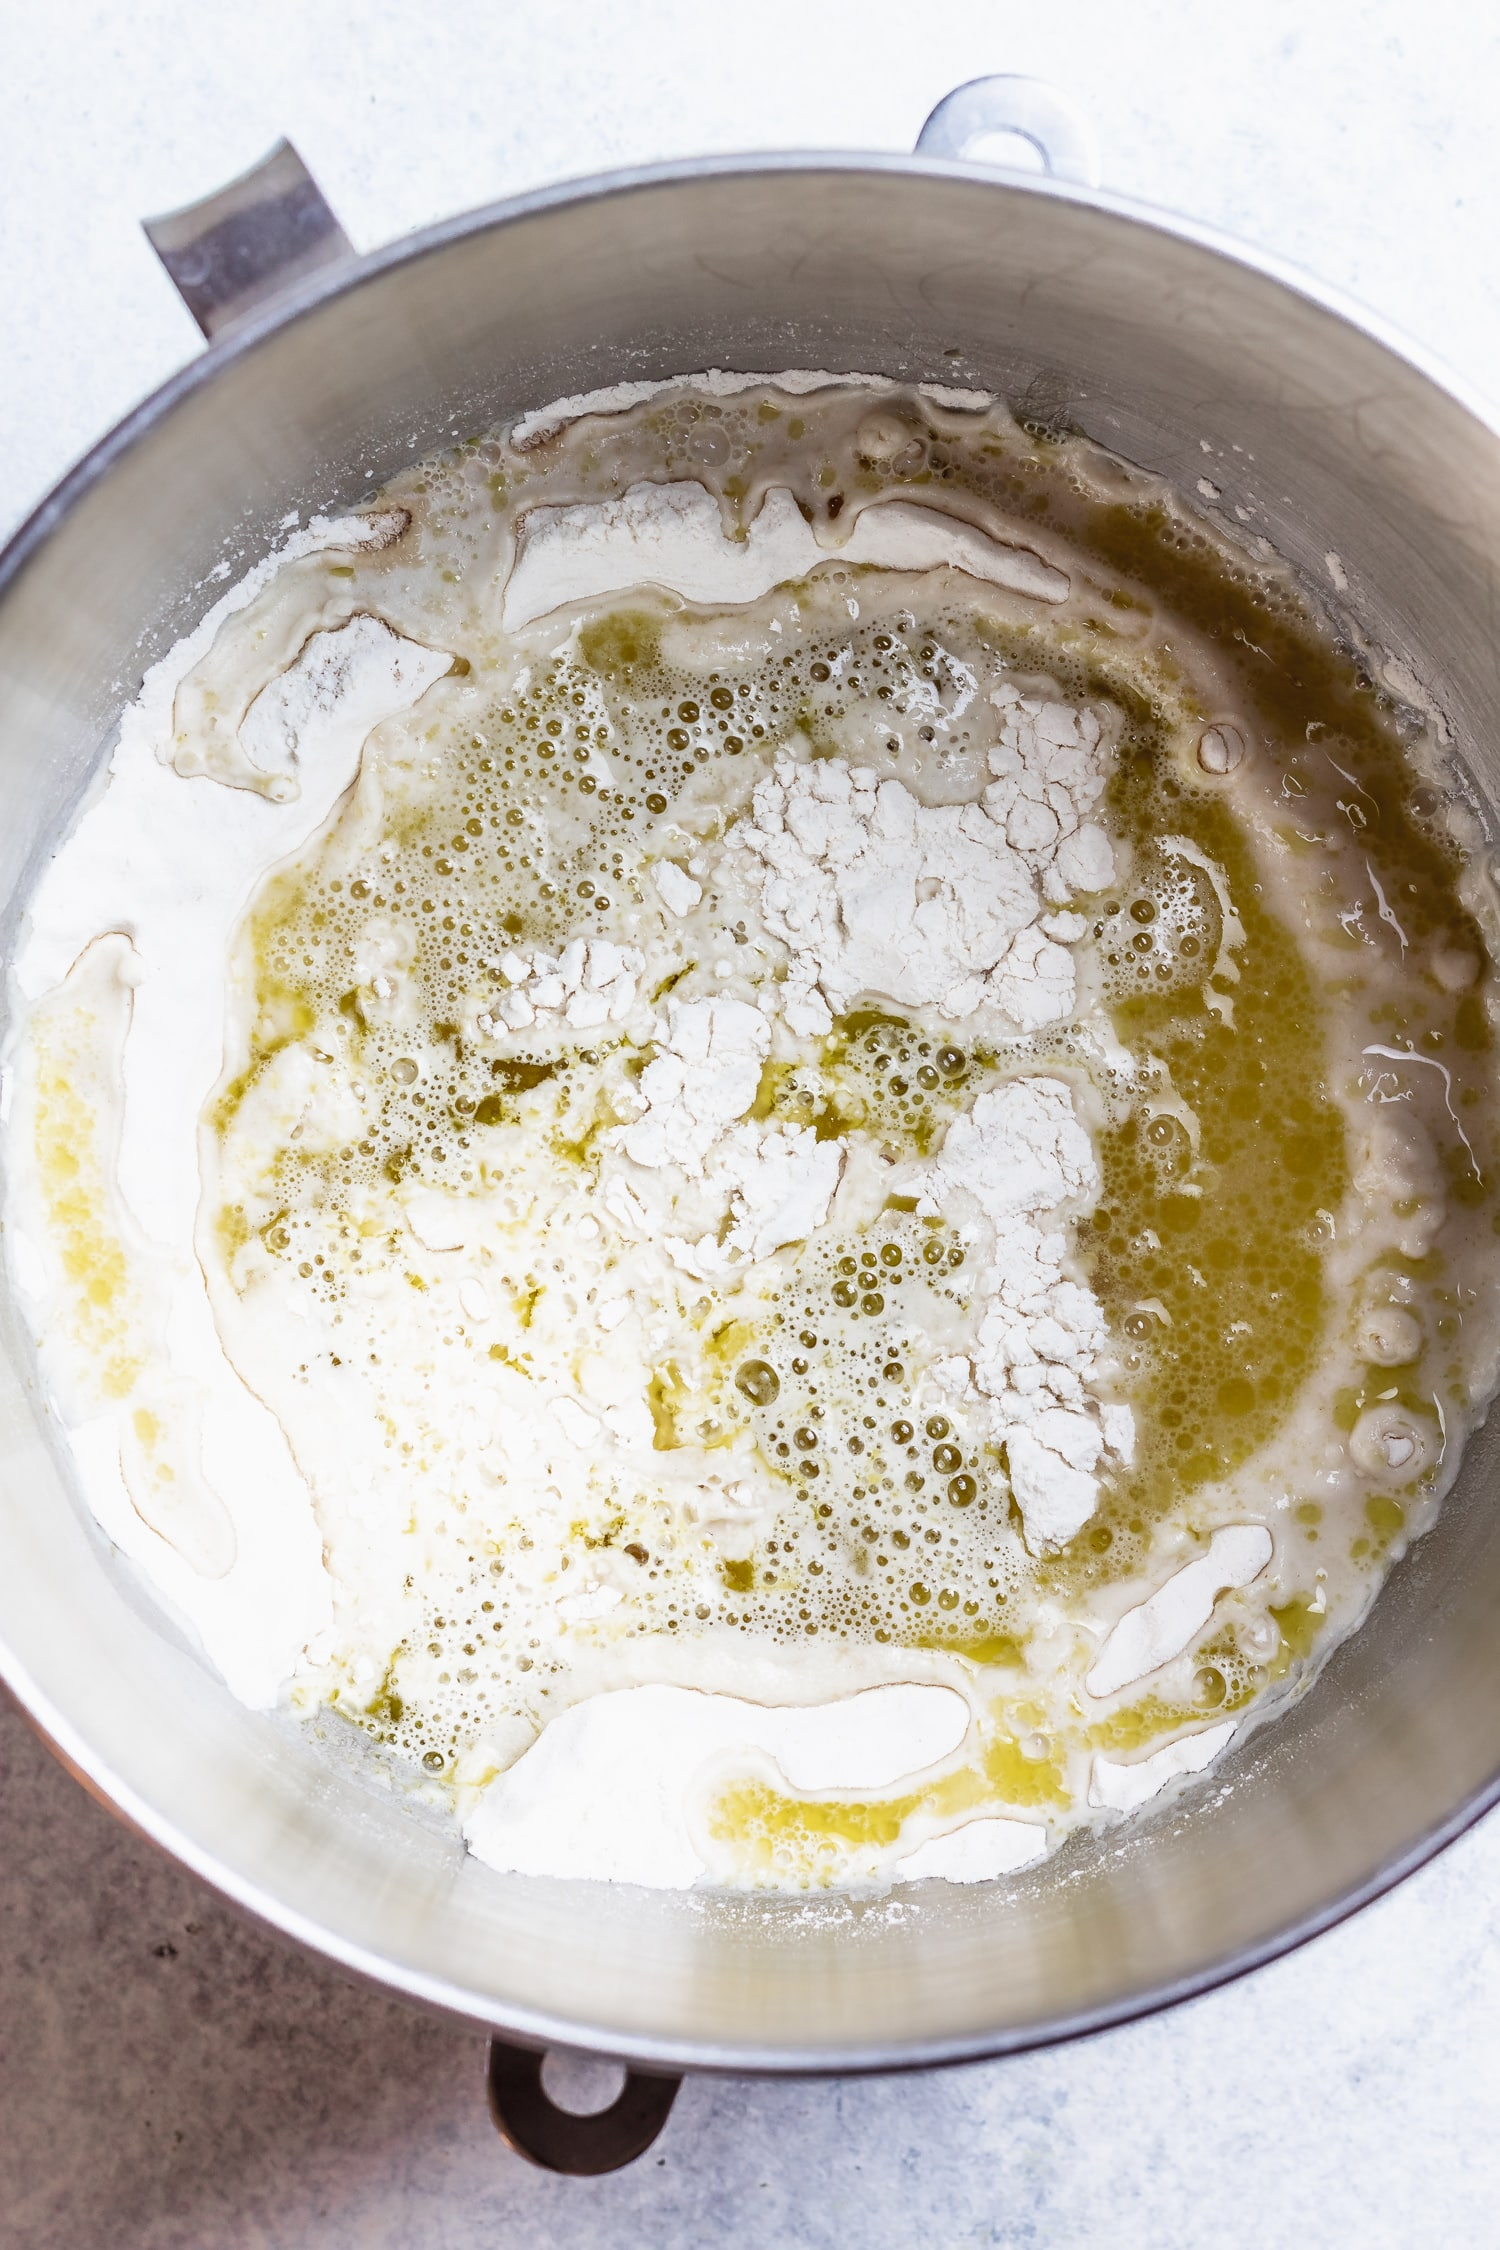 flour, olive oil and water in a mixing bowl